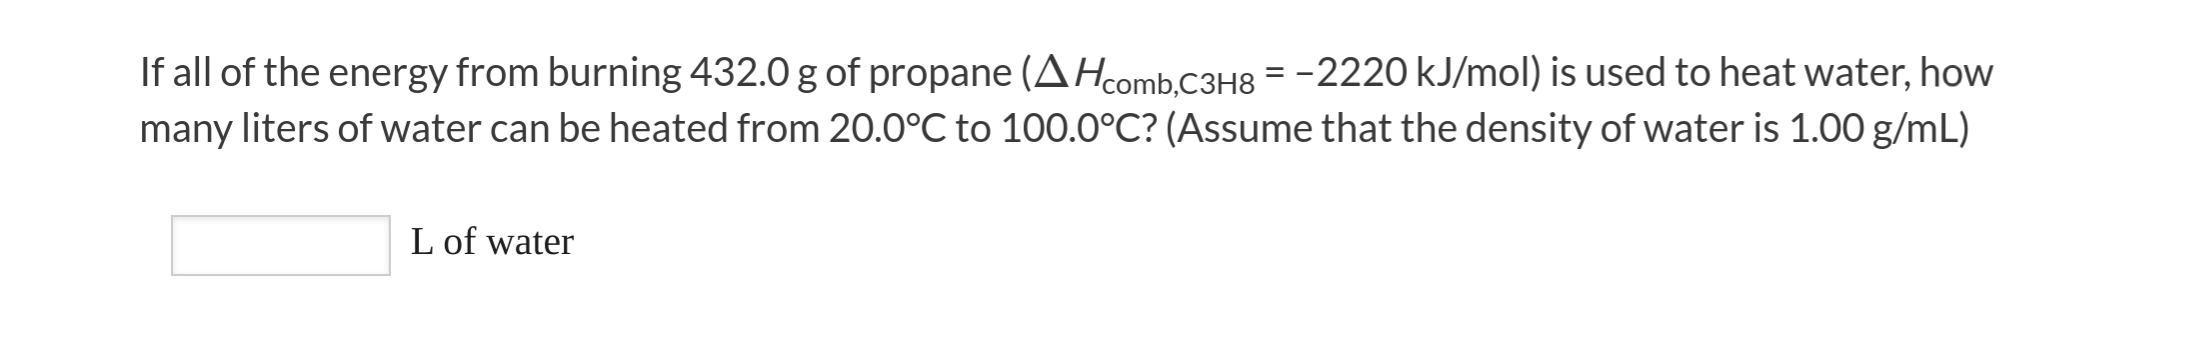 If all of the energy from burning 432.0 g of propane (AHcomb.C3H8 = -2220 kJ/mol) is used to heat water, how many liters of water can be heated from 20.0°C to 100.0°C? (Assume that the density of water is 1.00 g/mL) L of water